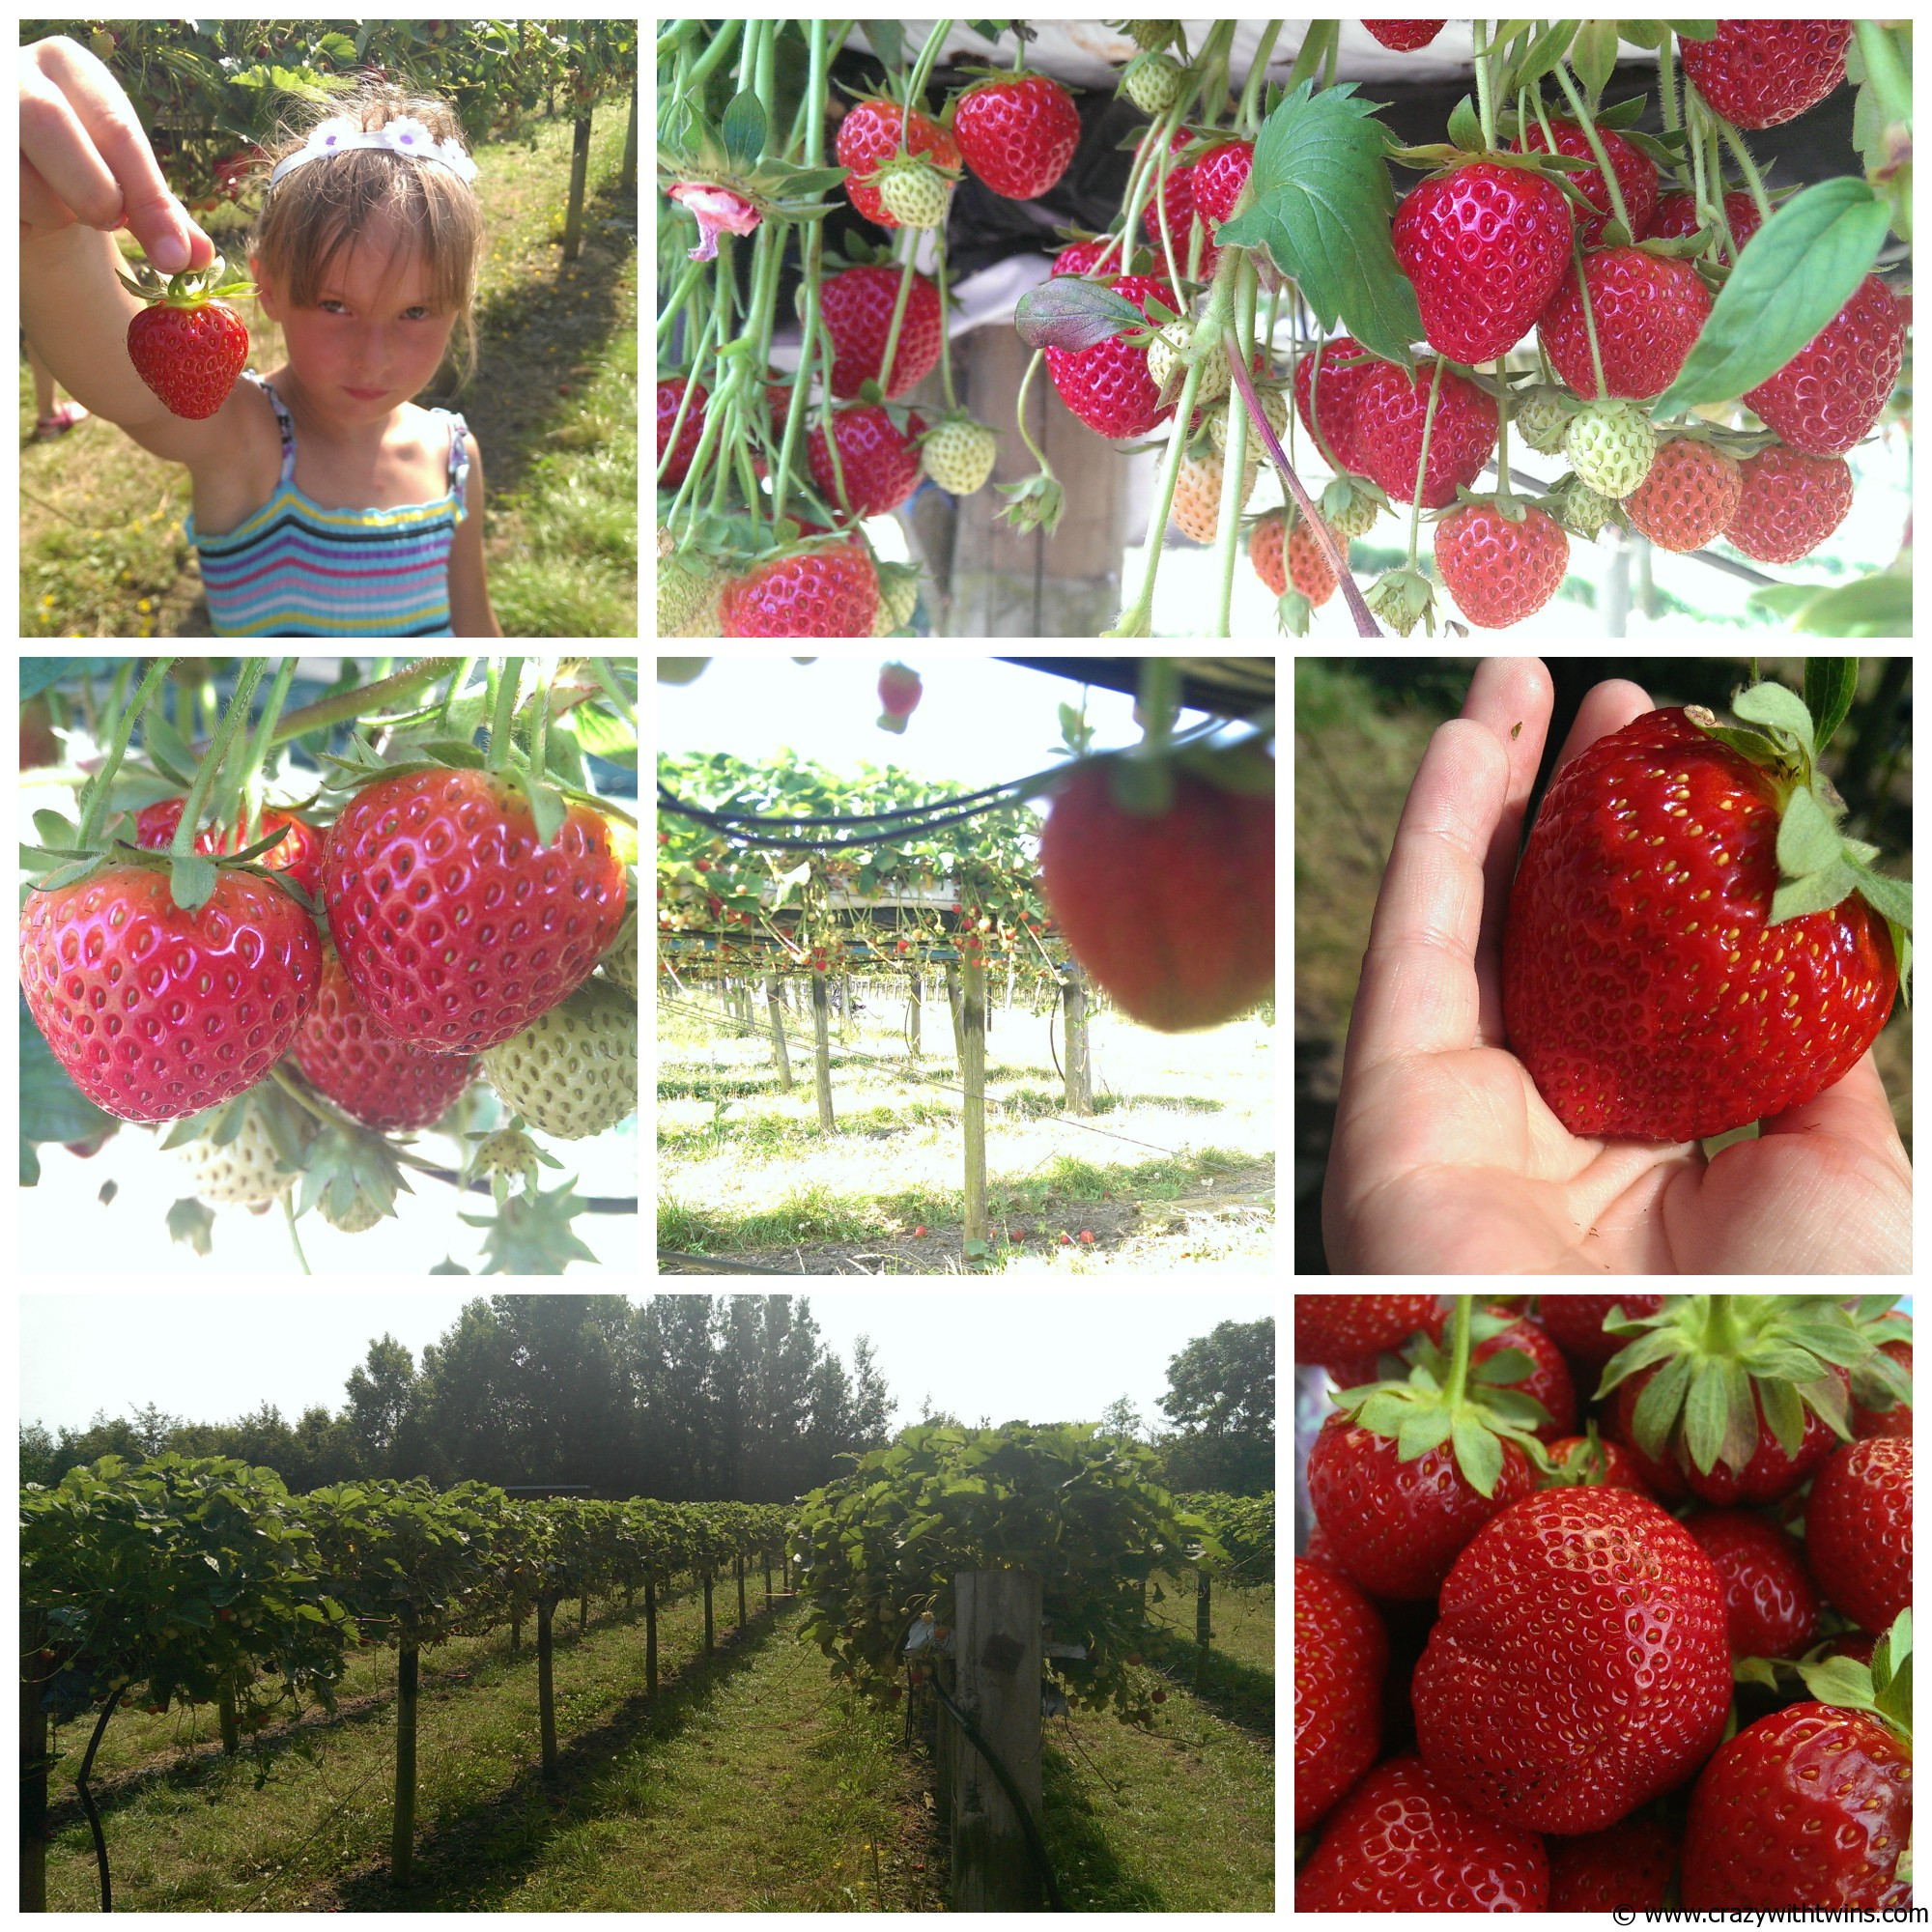 Primrose Vale strawberry picking